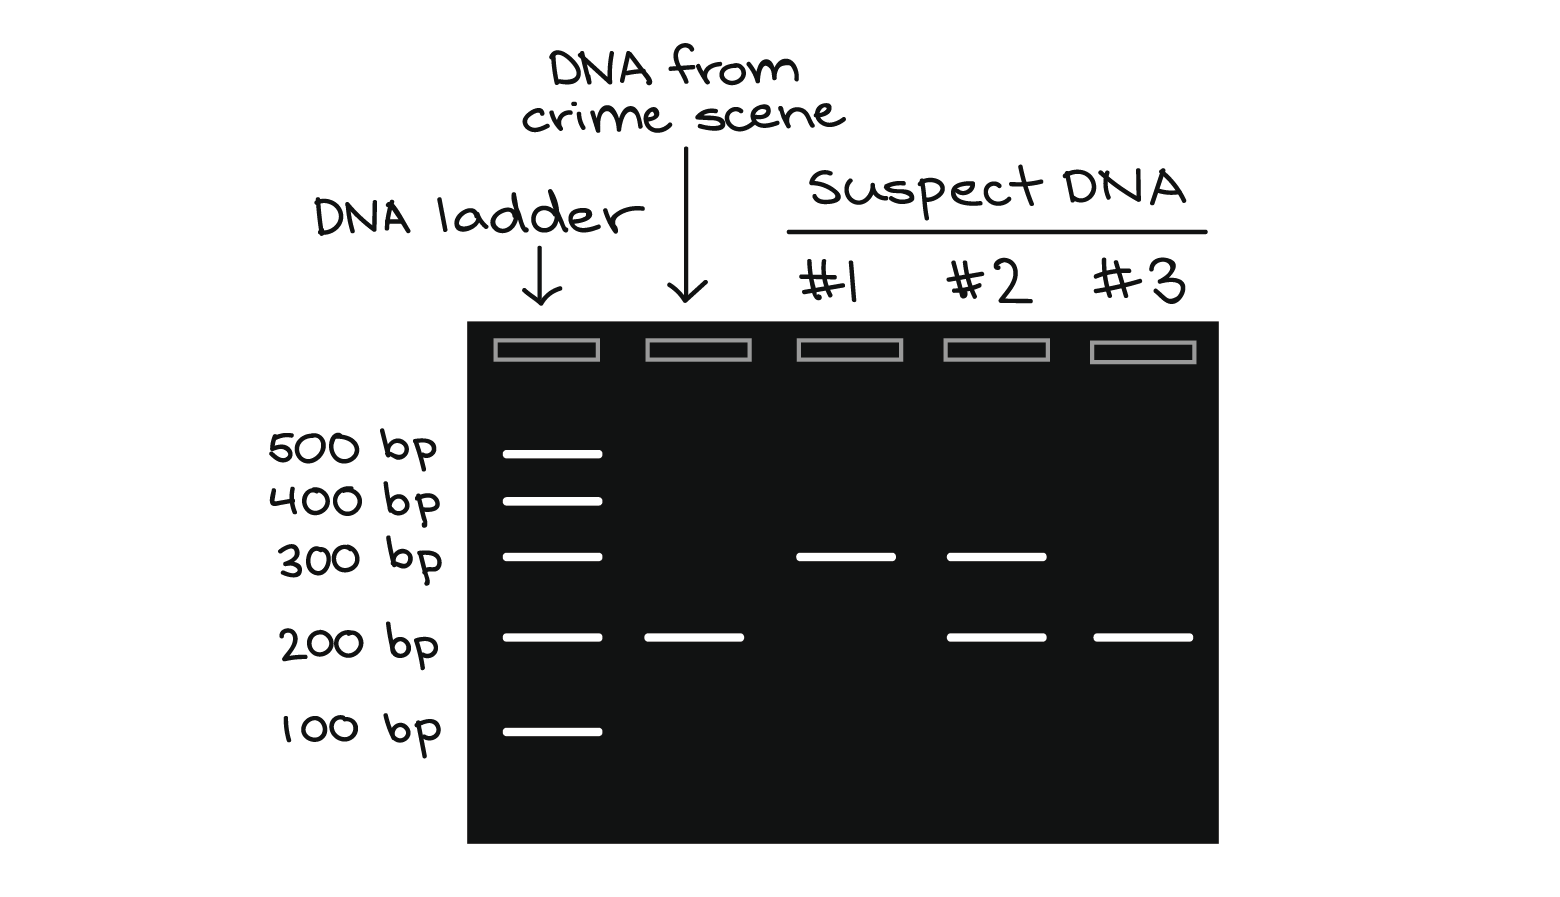 Polymerase Chain Reaction Pcr Article Khan Academy Dna Technology Study Motivation Dna Sequence